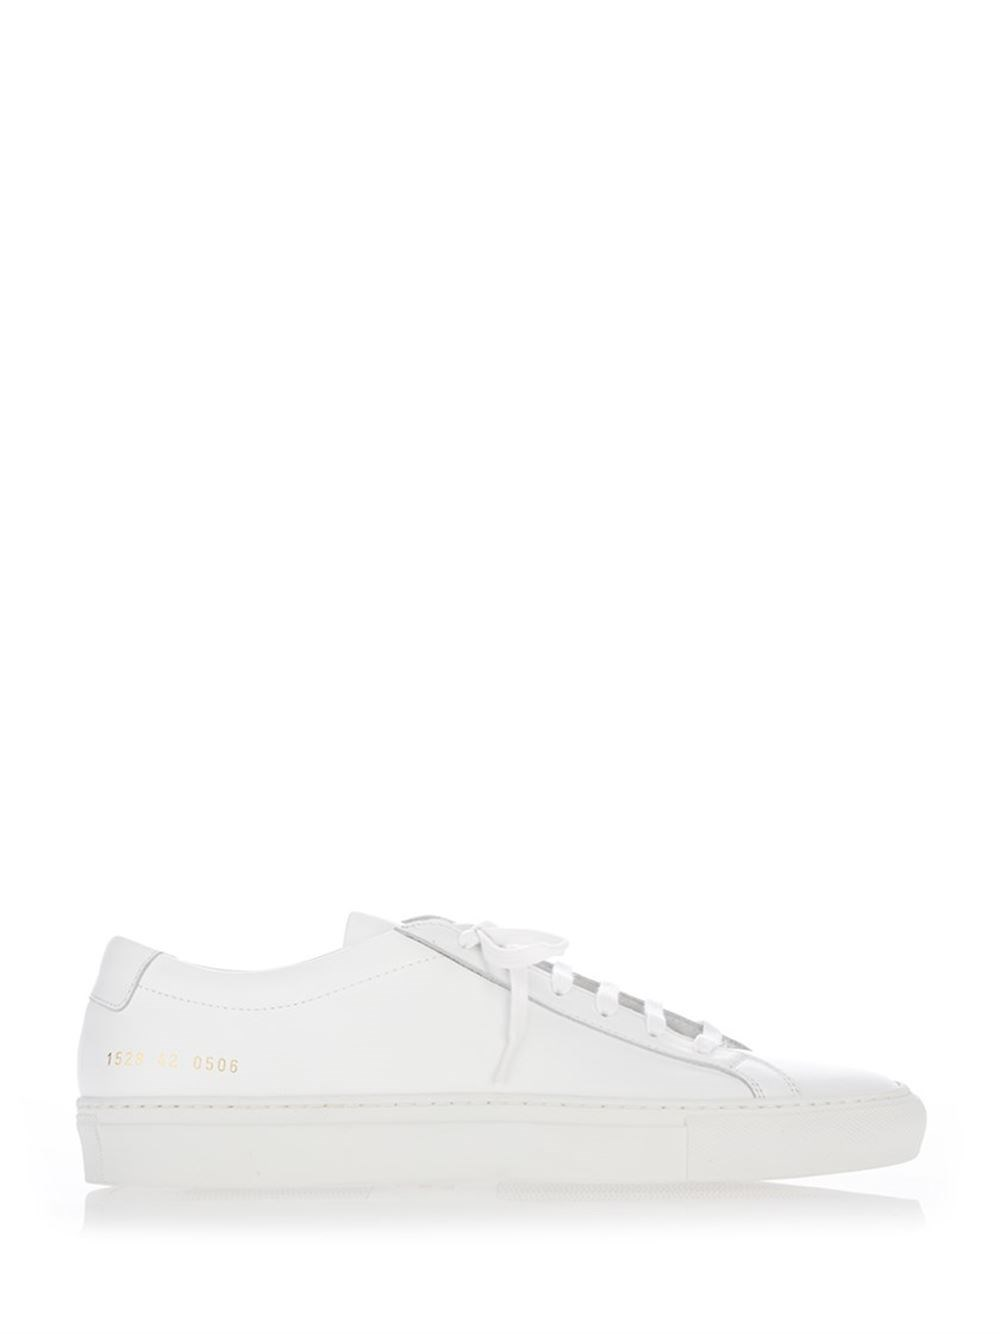 "COMMON PROJECTS ""Achilles"" Total White Nappa Sneakers"